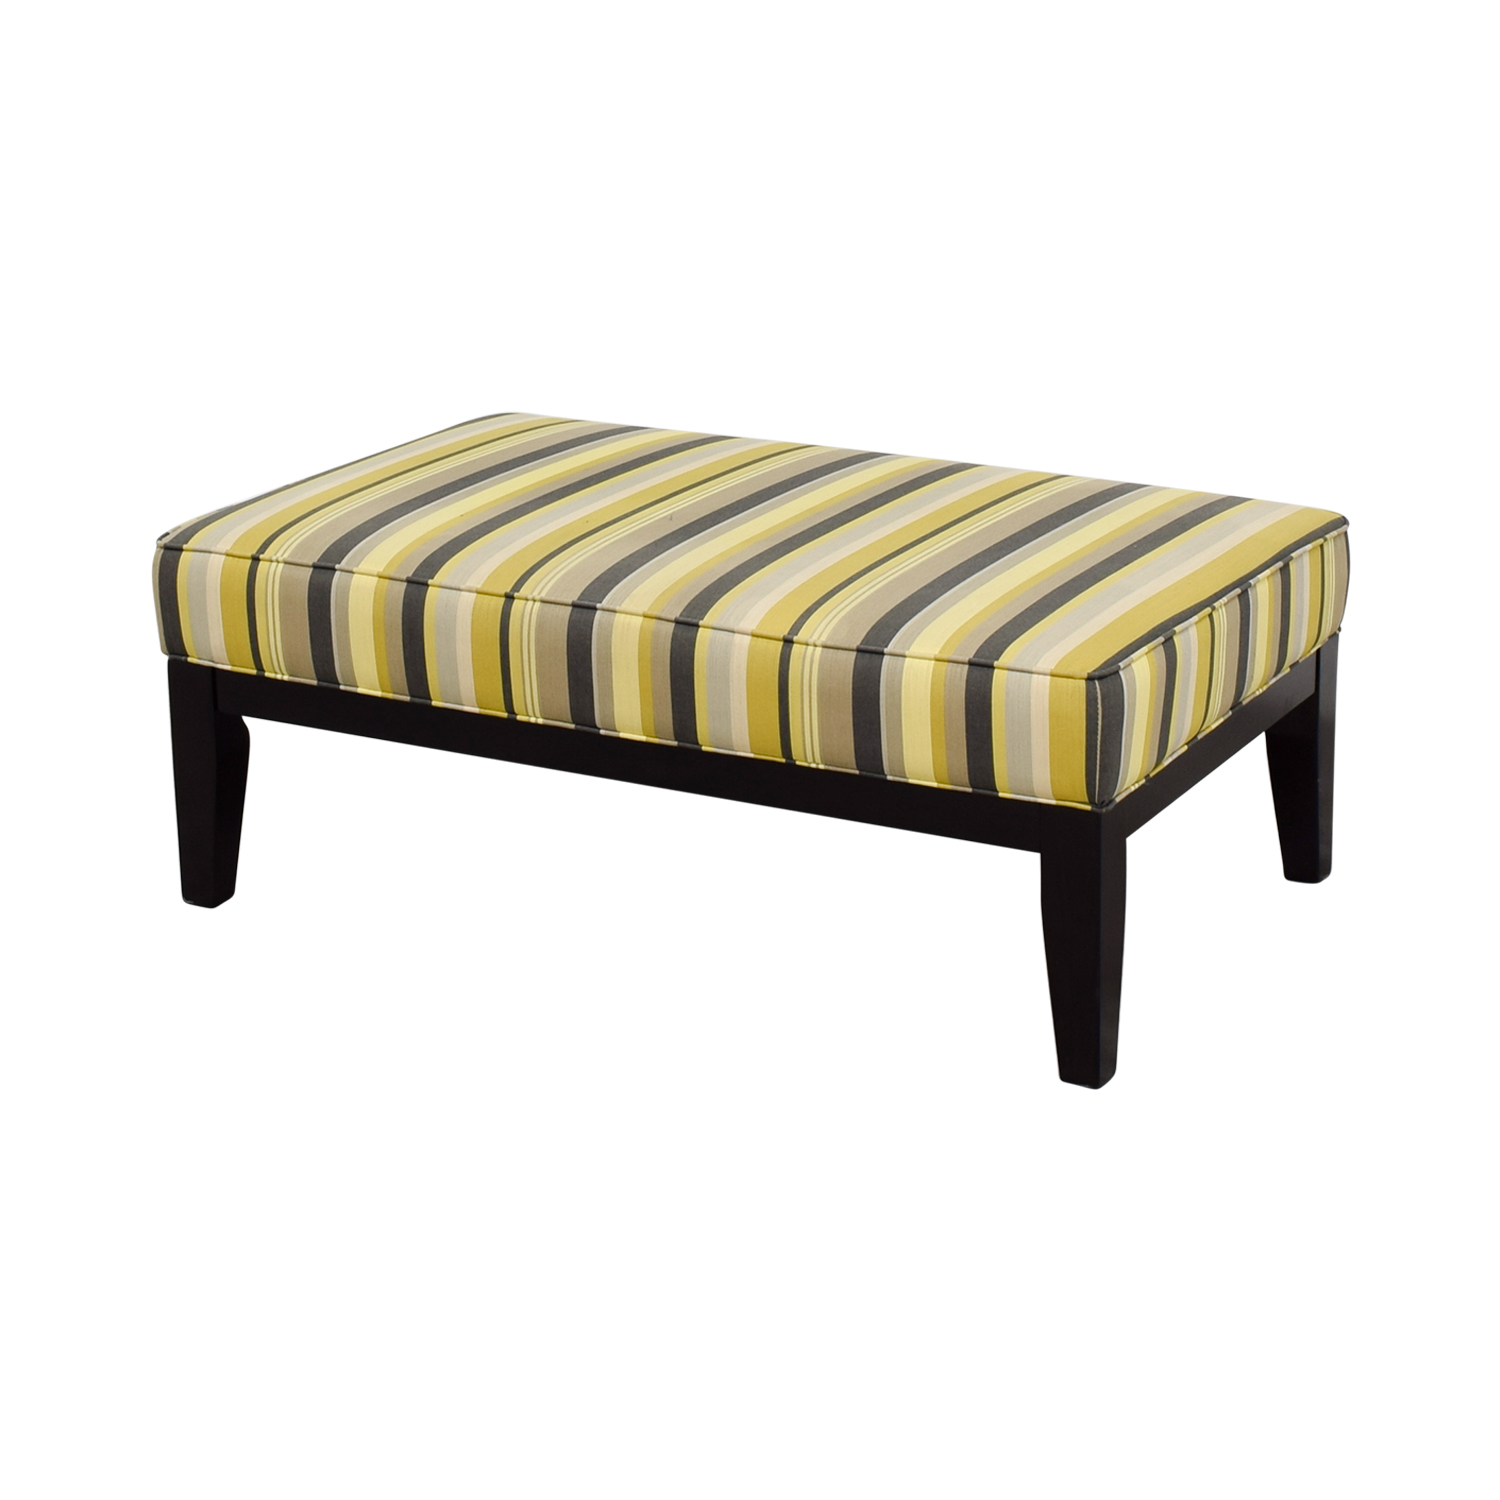 buy Raymour & Flanigan Yellow Green and Grey Striped Oversized Ottoman Raymour & Flanigan Chairs